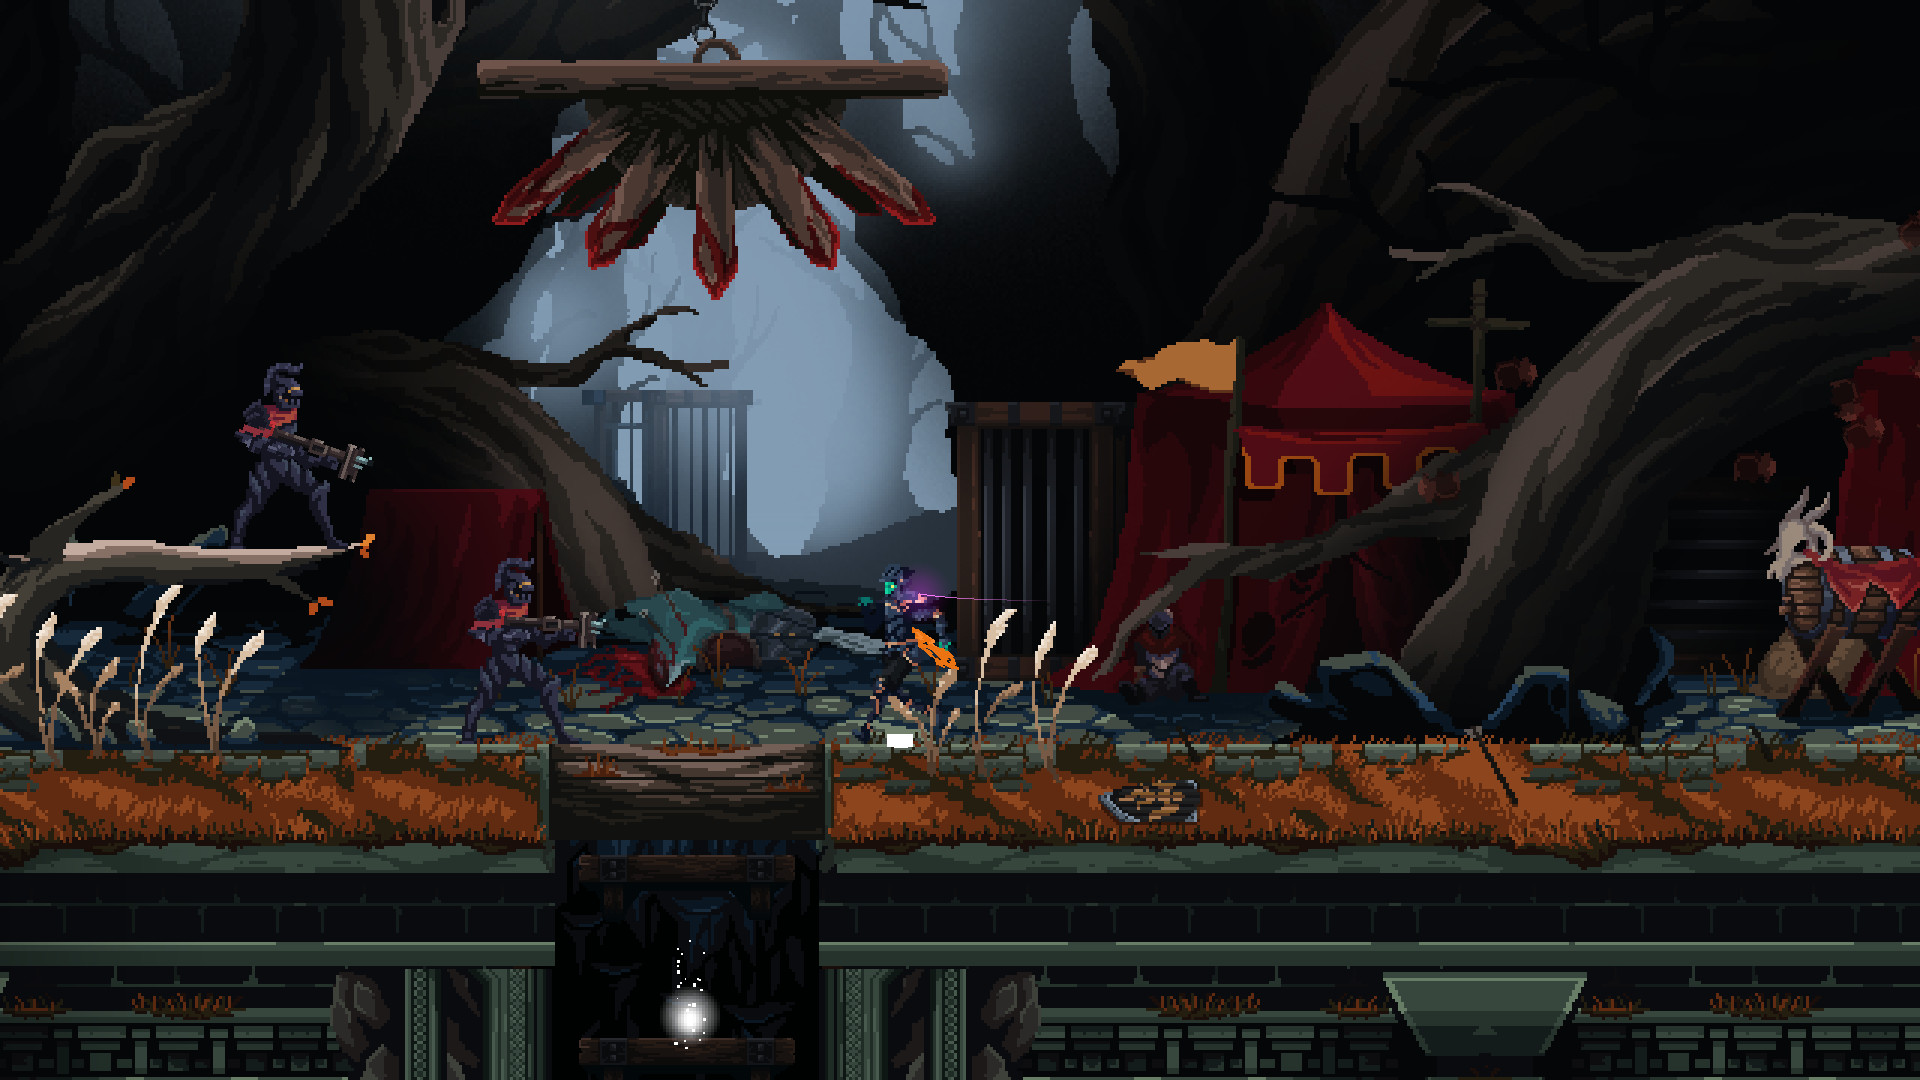 Alone! Adult pc game demos remarkable, rather